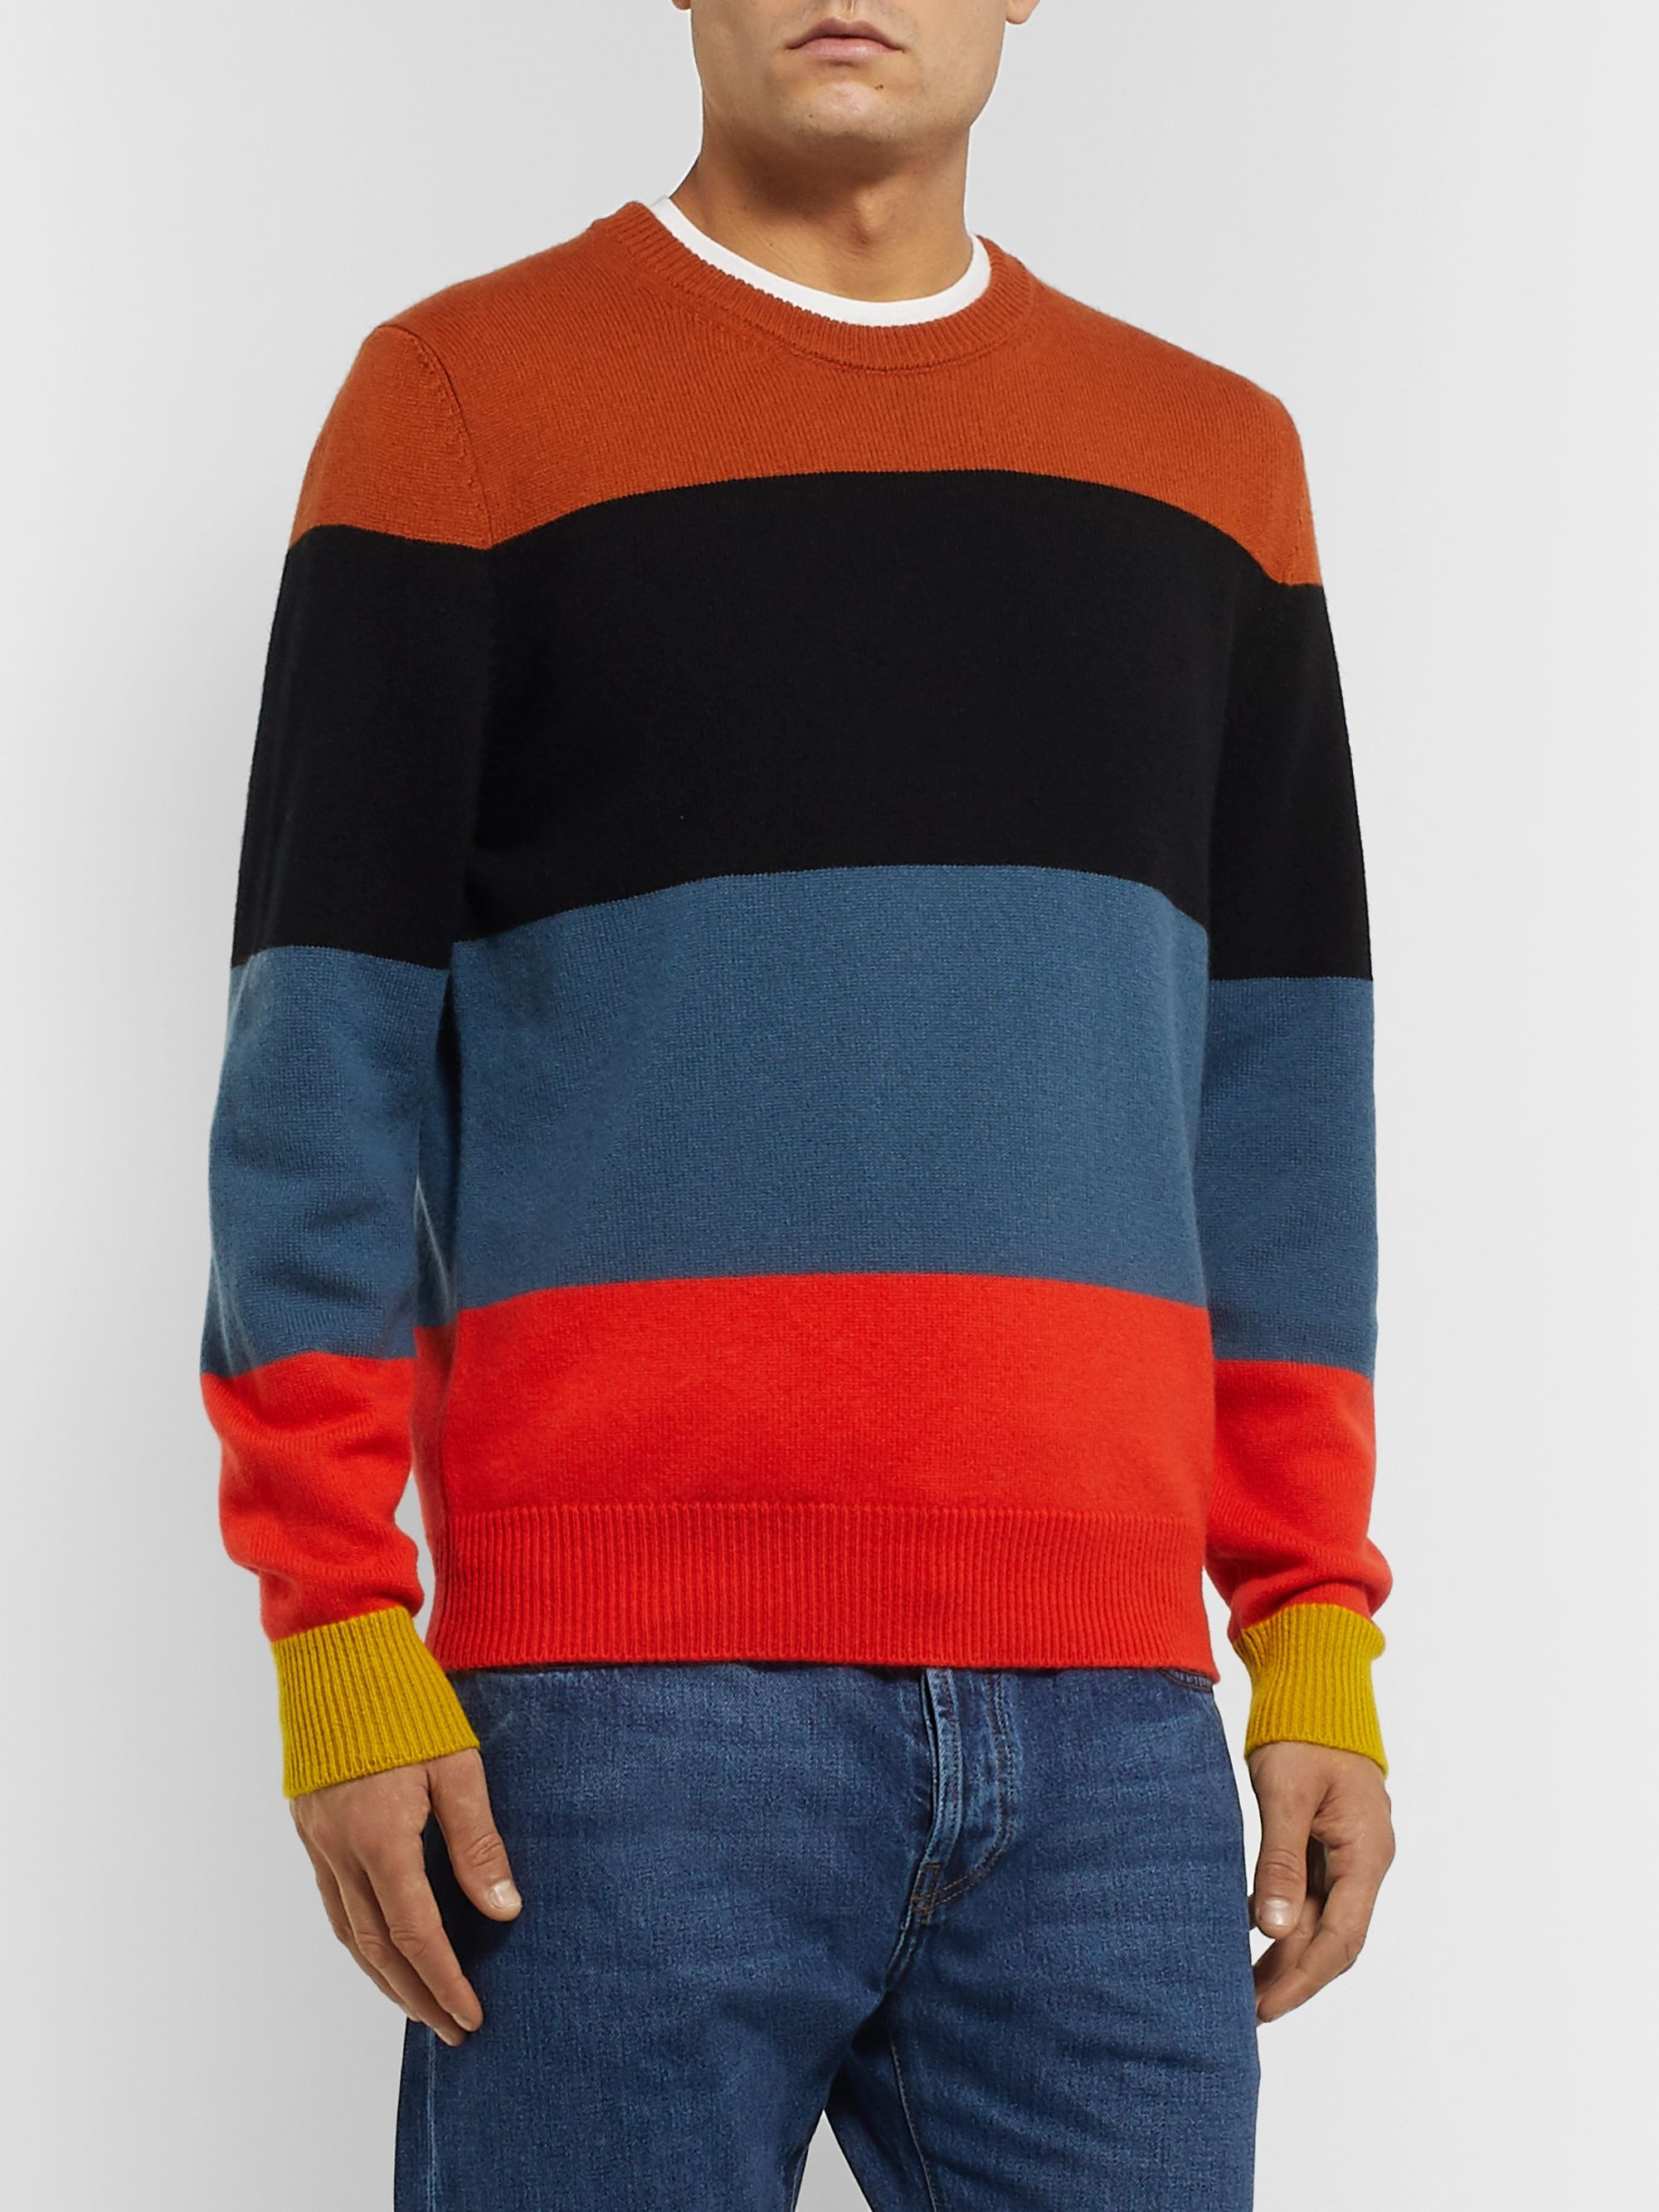 Paul Smith Slim-Fit Striped Cashmere Sweater